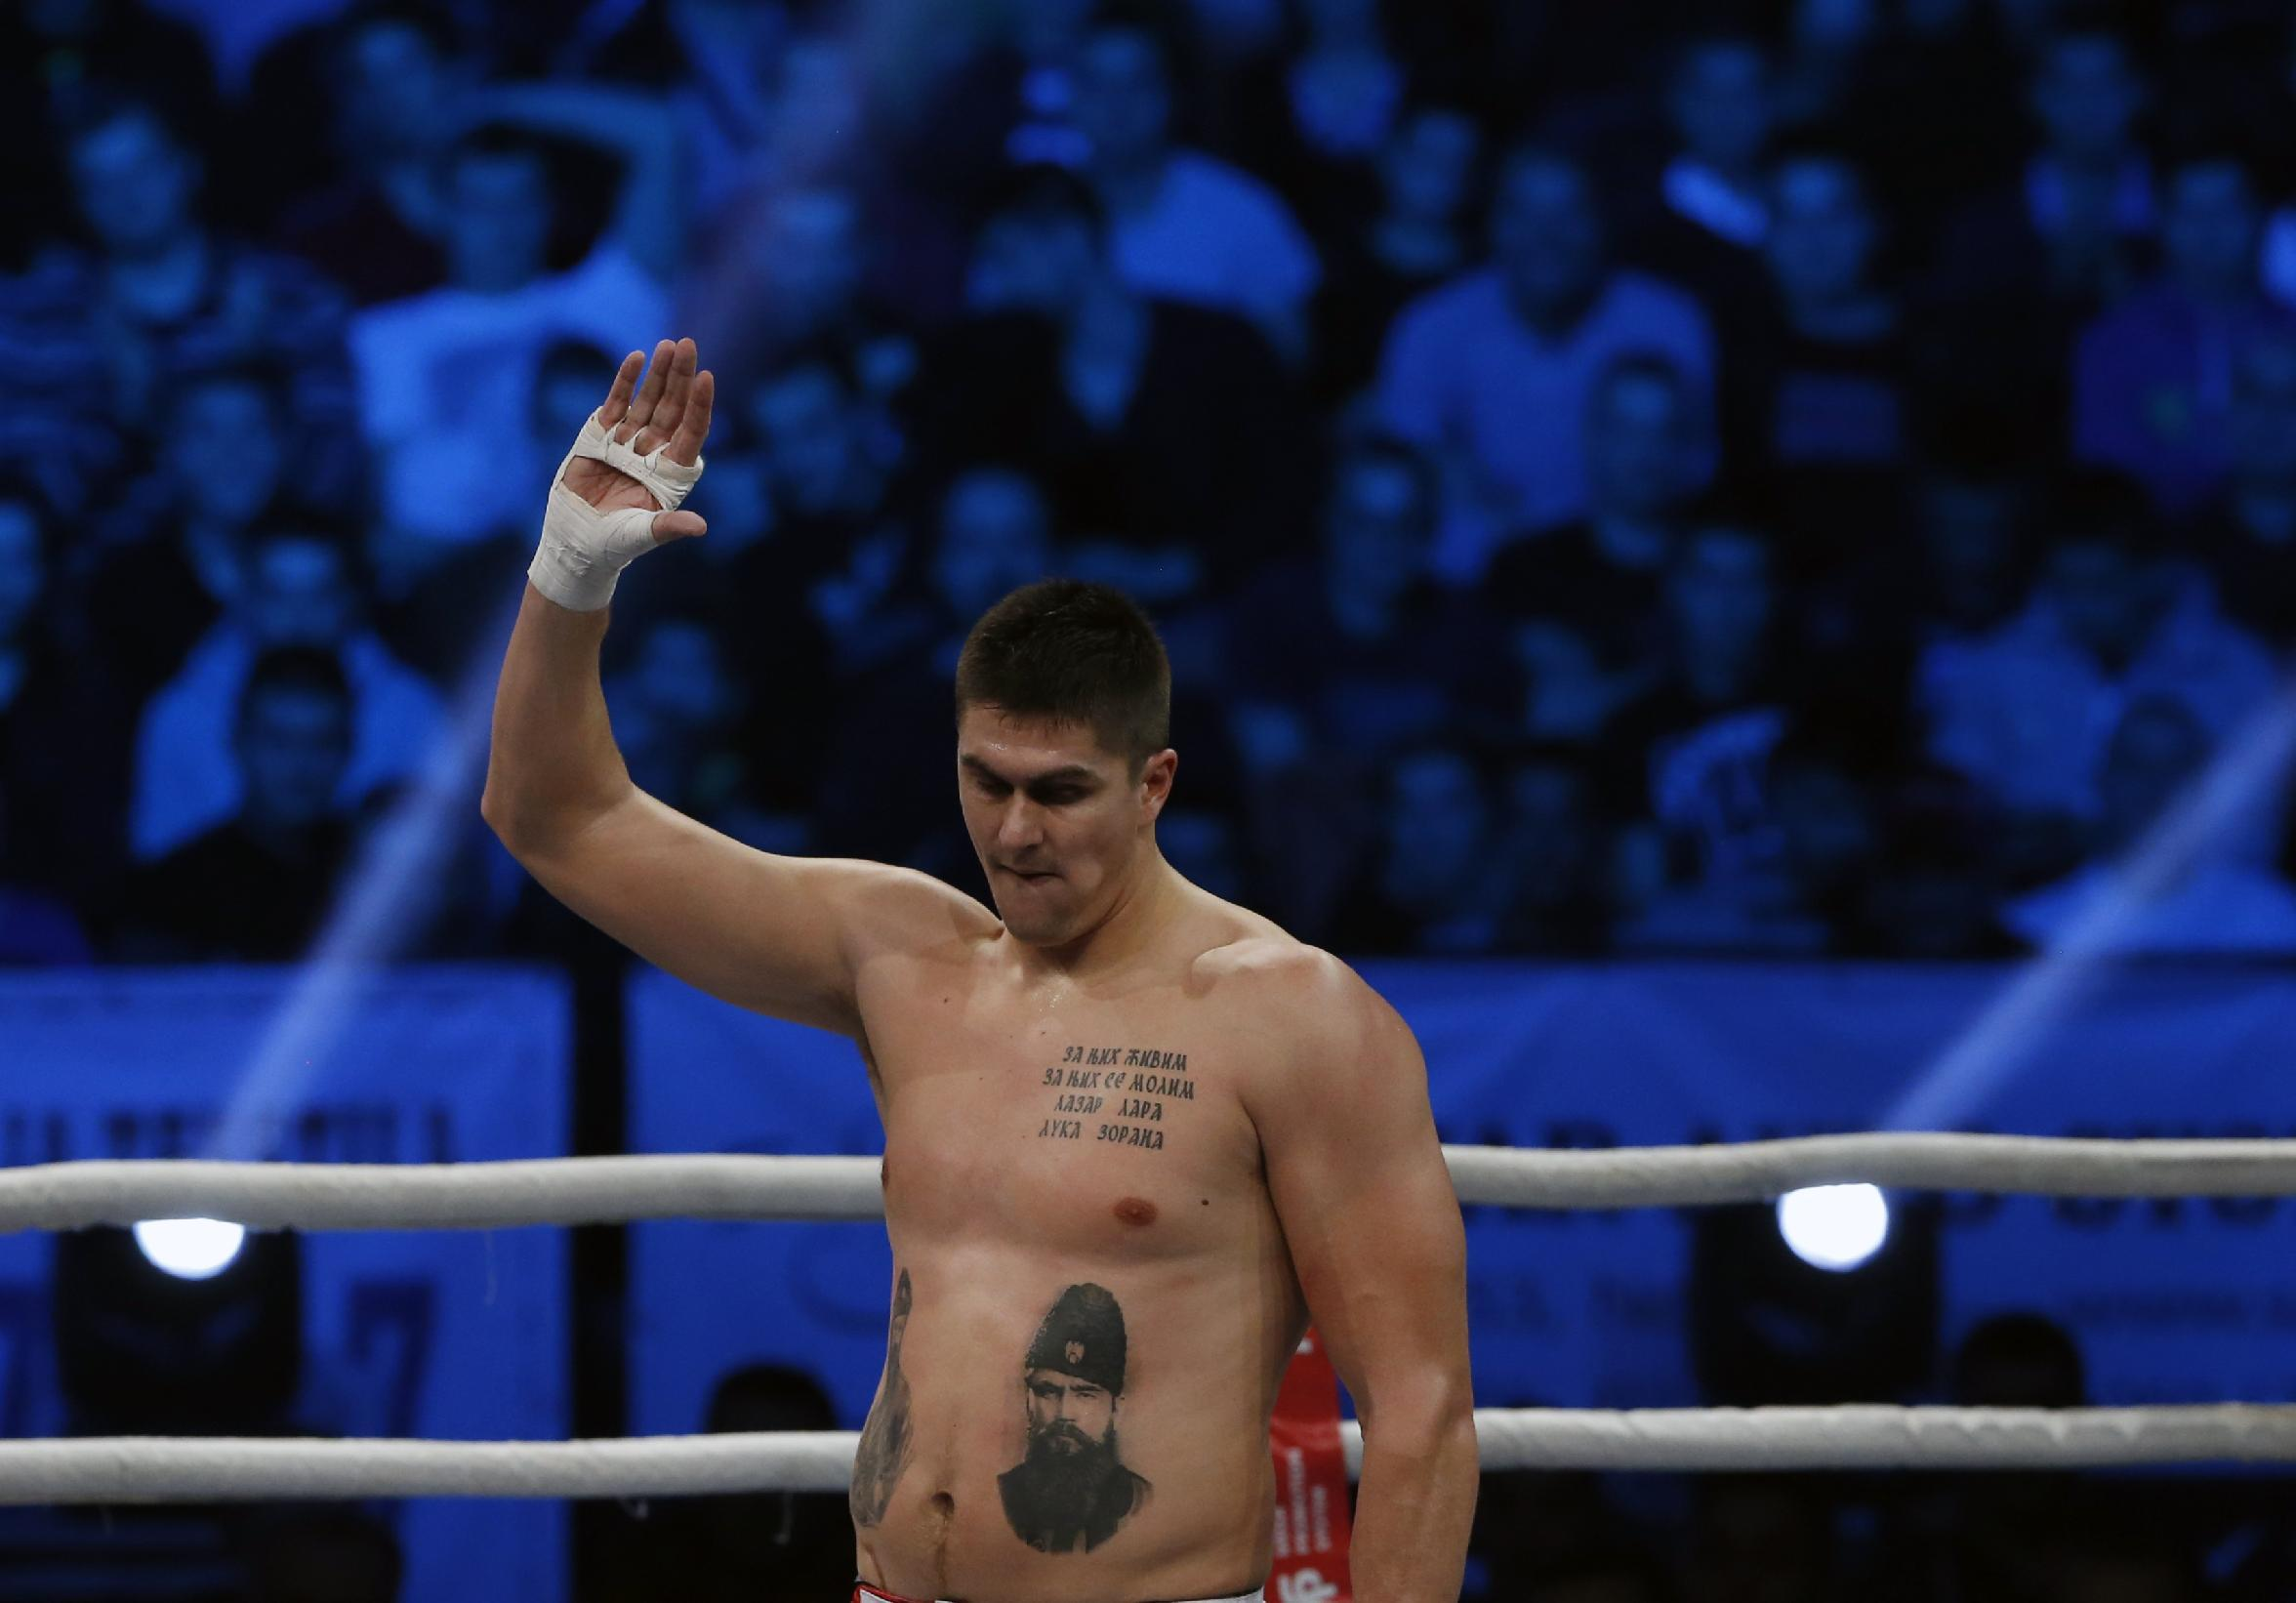 Here's a shirtless Darko Milicic singing and giving beer to his tattoos